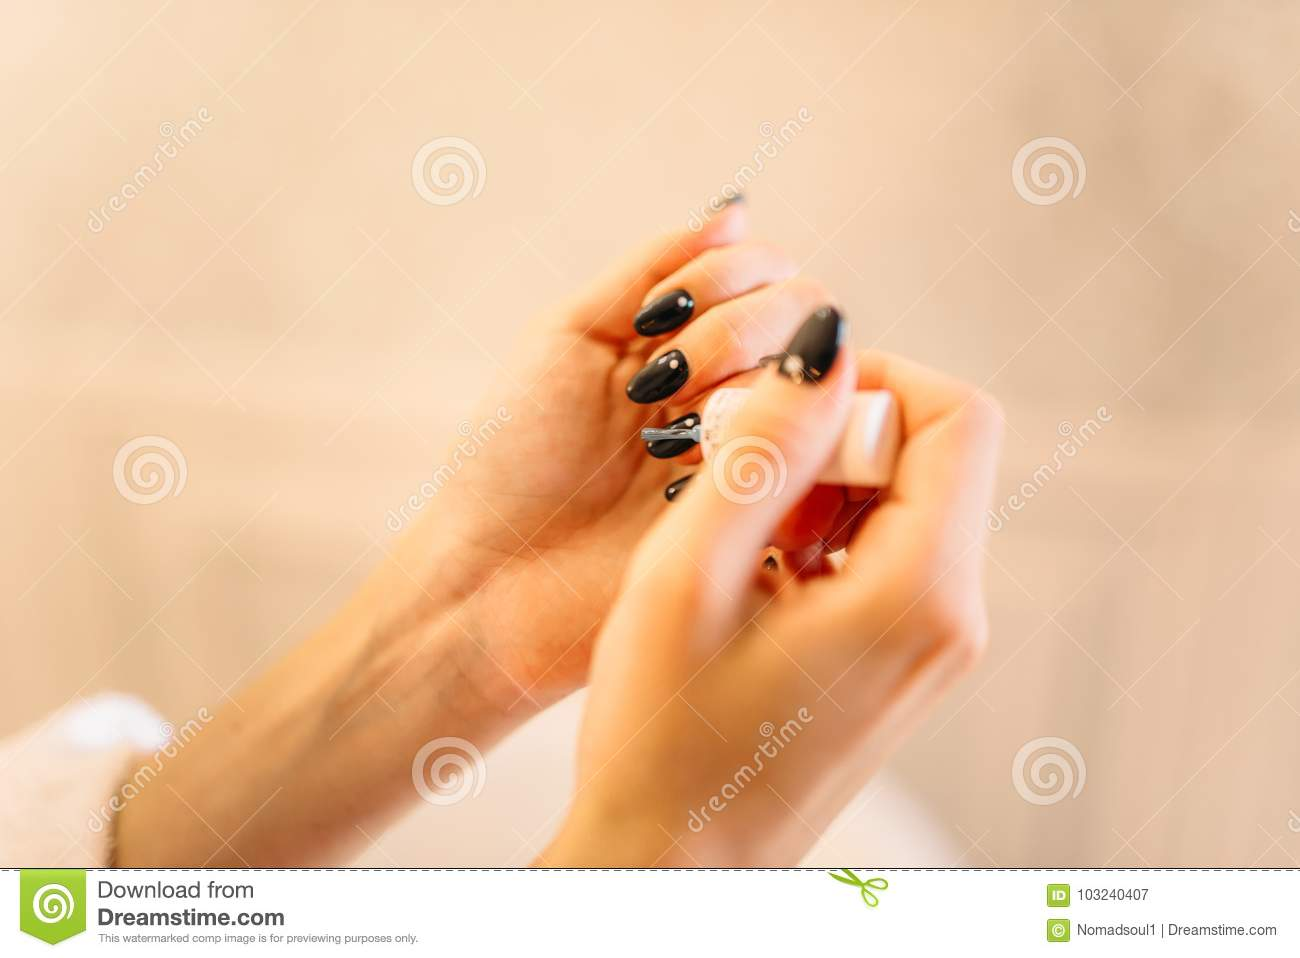 Female person hands with nail polish closeup